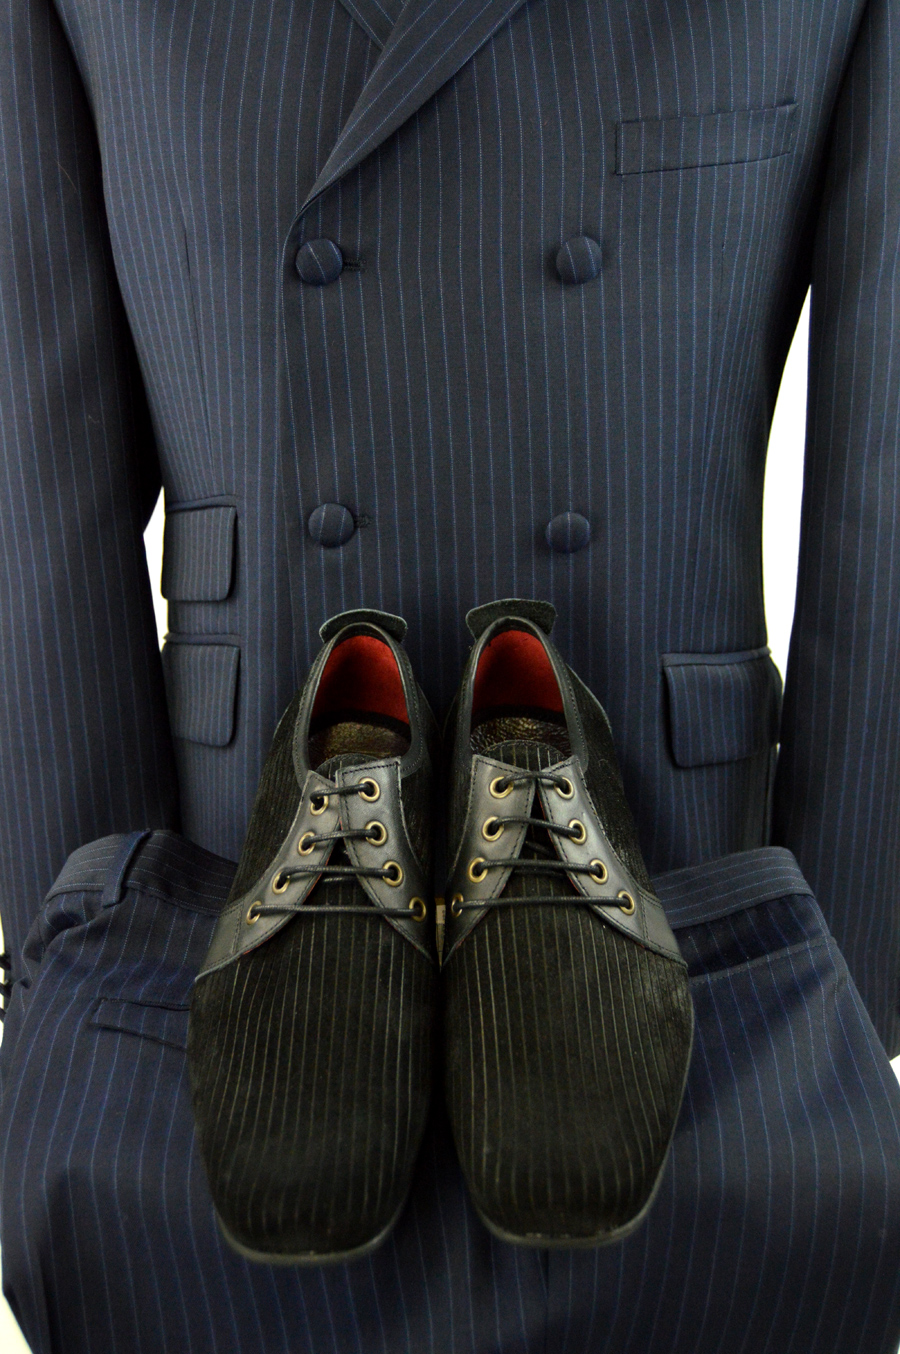 modshoes-suede-corded-shoes-rawlings-with-blue-striped-mod-suit-from-adaptor-clothing-03